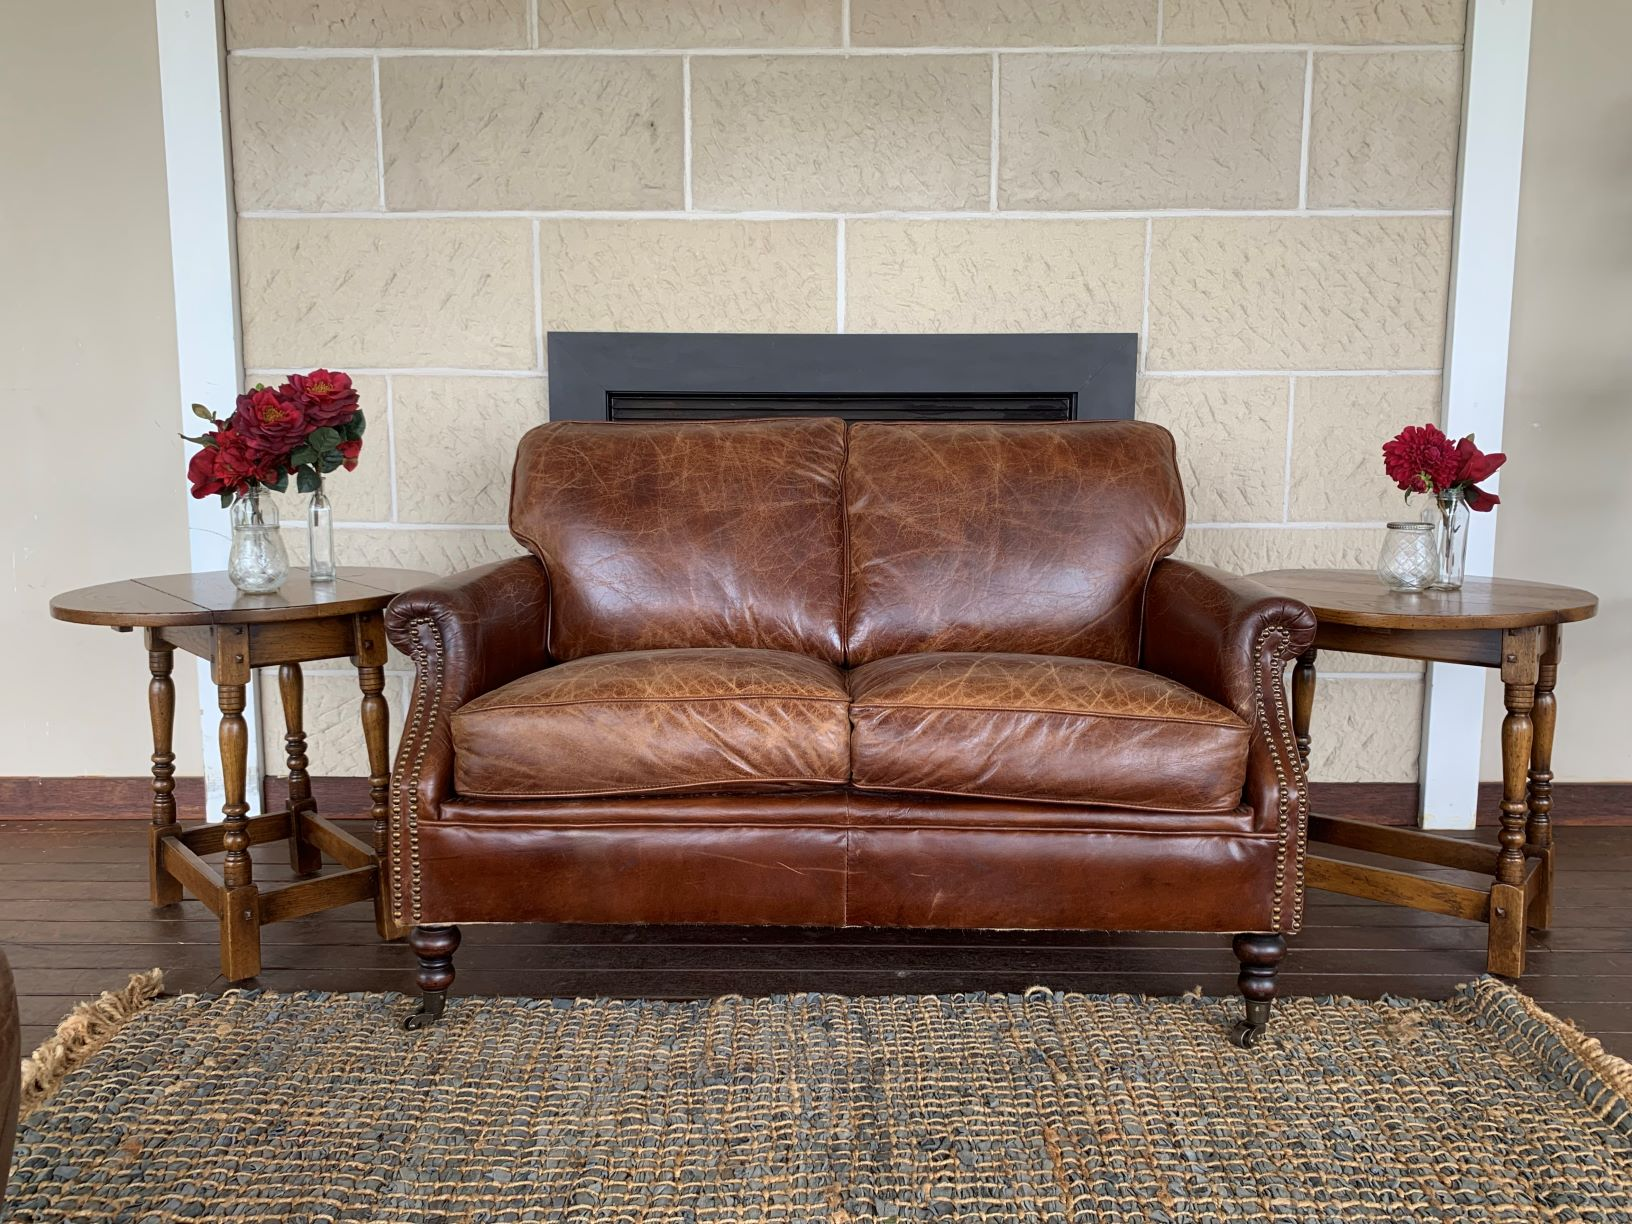 2 seater leather lounge (1)